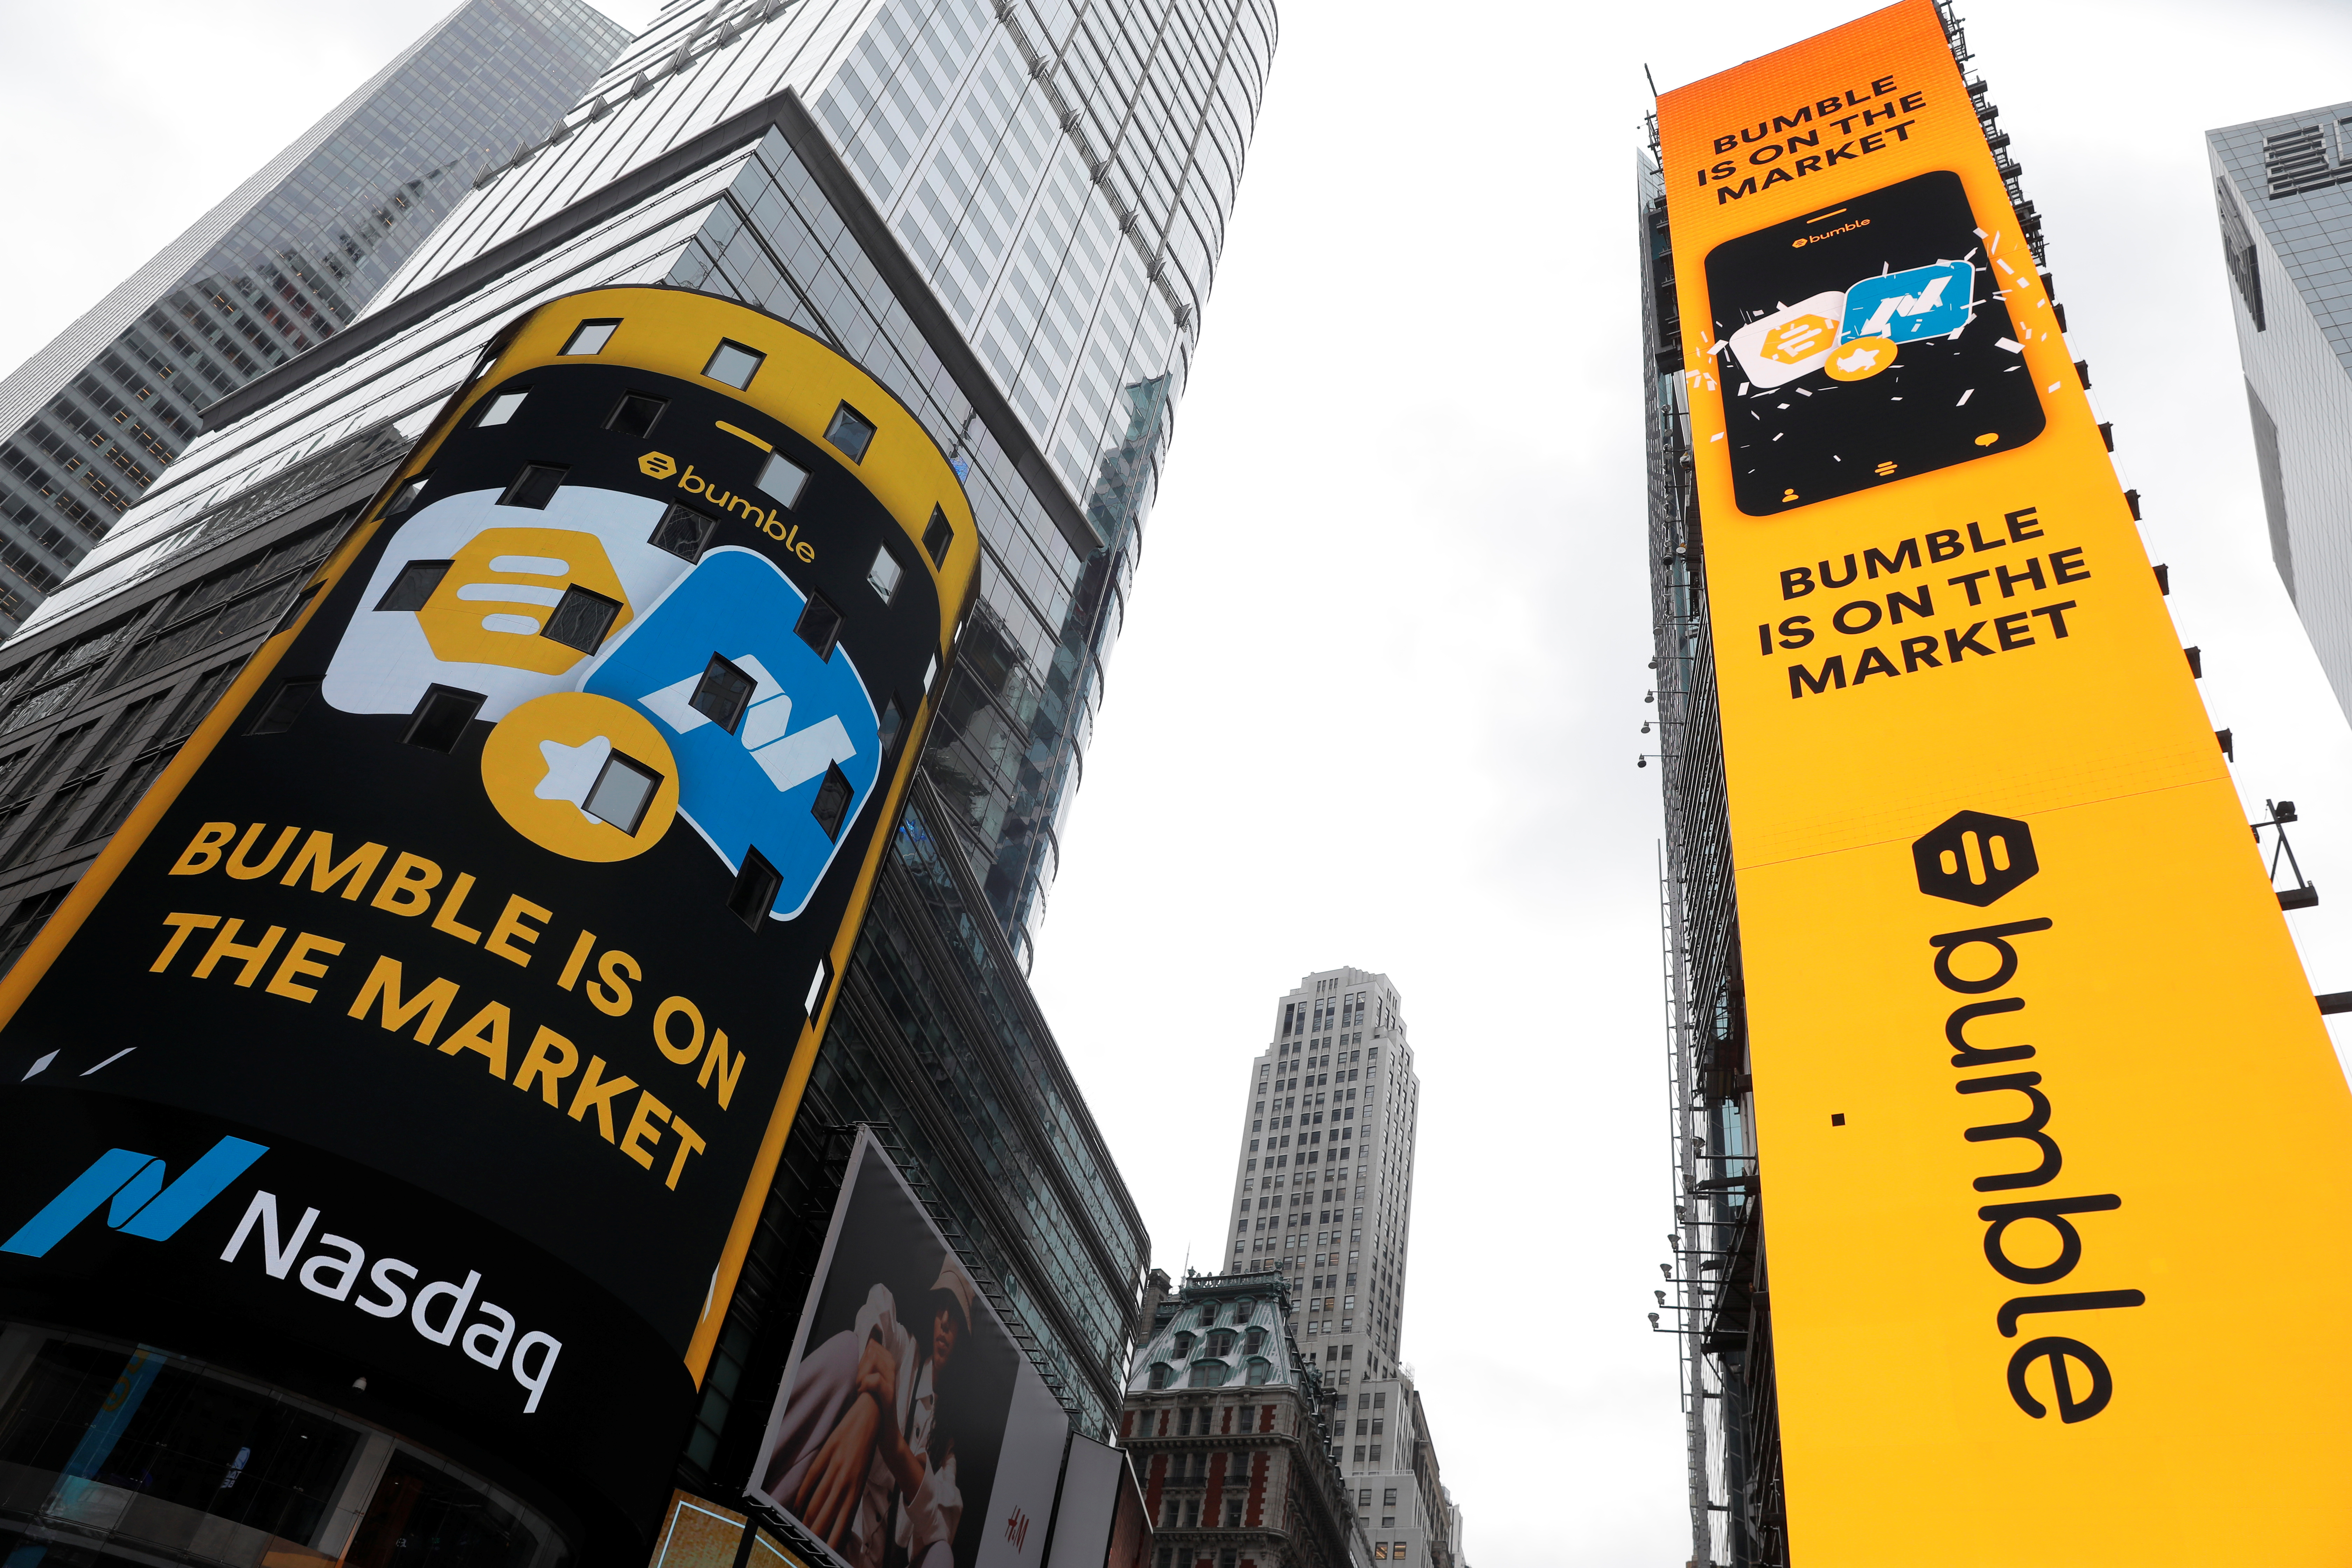 Displays in Times Square outside the Nasdaq MarketSite are pictured as dating app operator Bumble Inc. (BMBL) made its debut on the Nasdaq stock exchange during the company's IPO in New York City, New York, U.S., February 11, 2021. REUTERS/Mike Segar